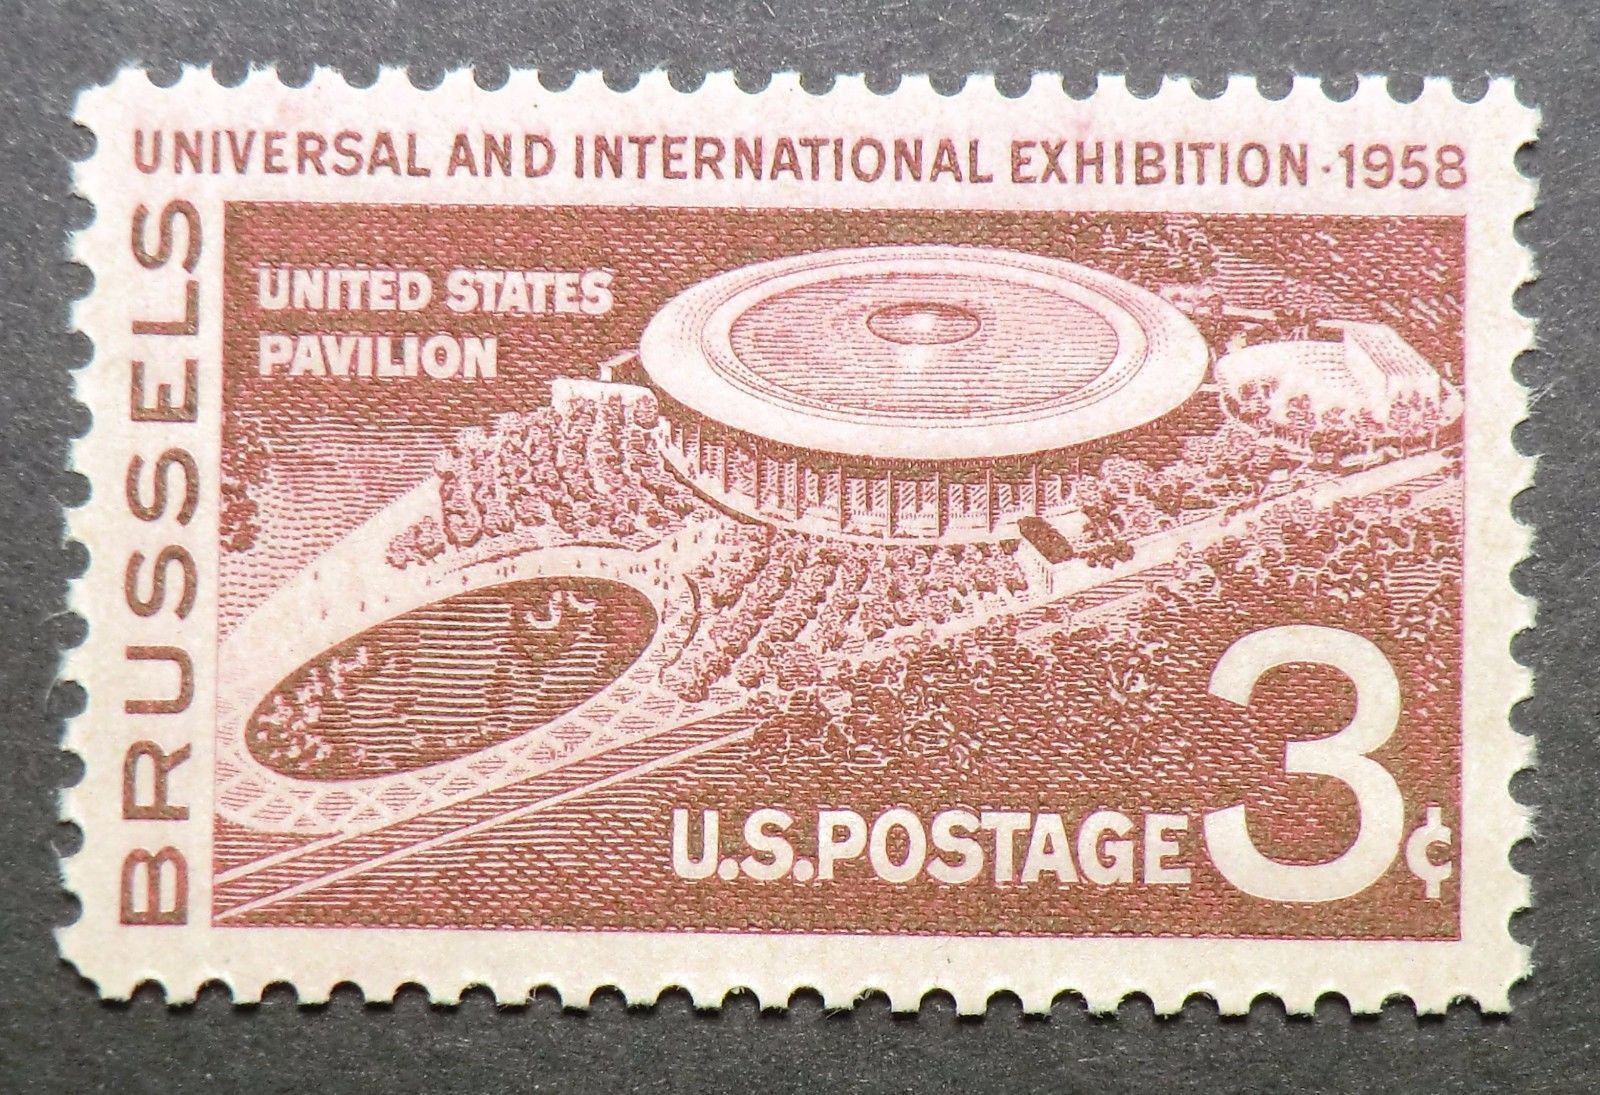 1104 Mnh 1958 3 Brussels Exhibition Belgium 1st World S Fair After Wwii Ebay Exhibition World S Fair Stamp Collecting